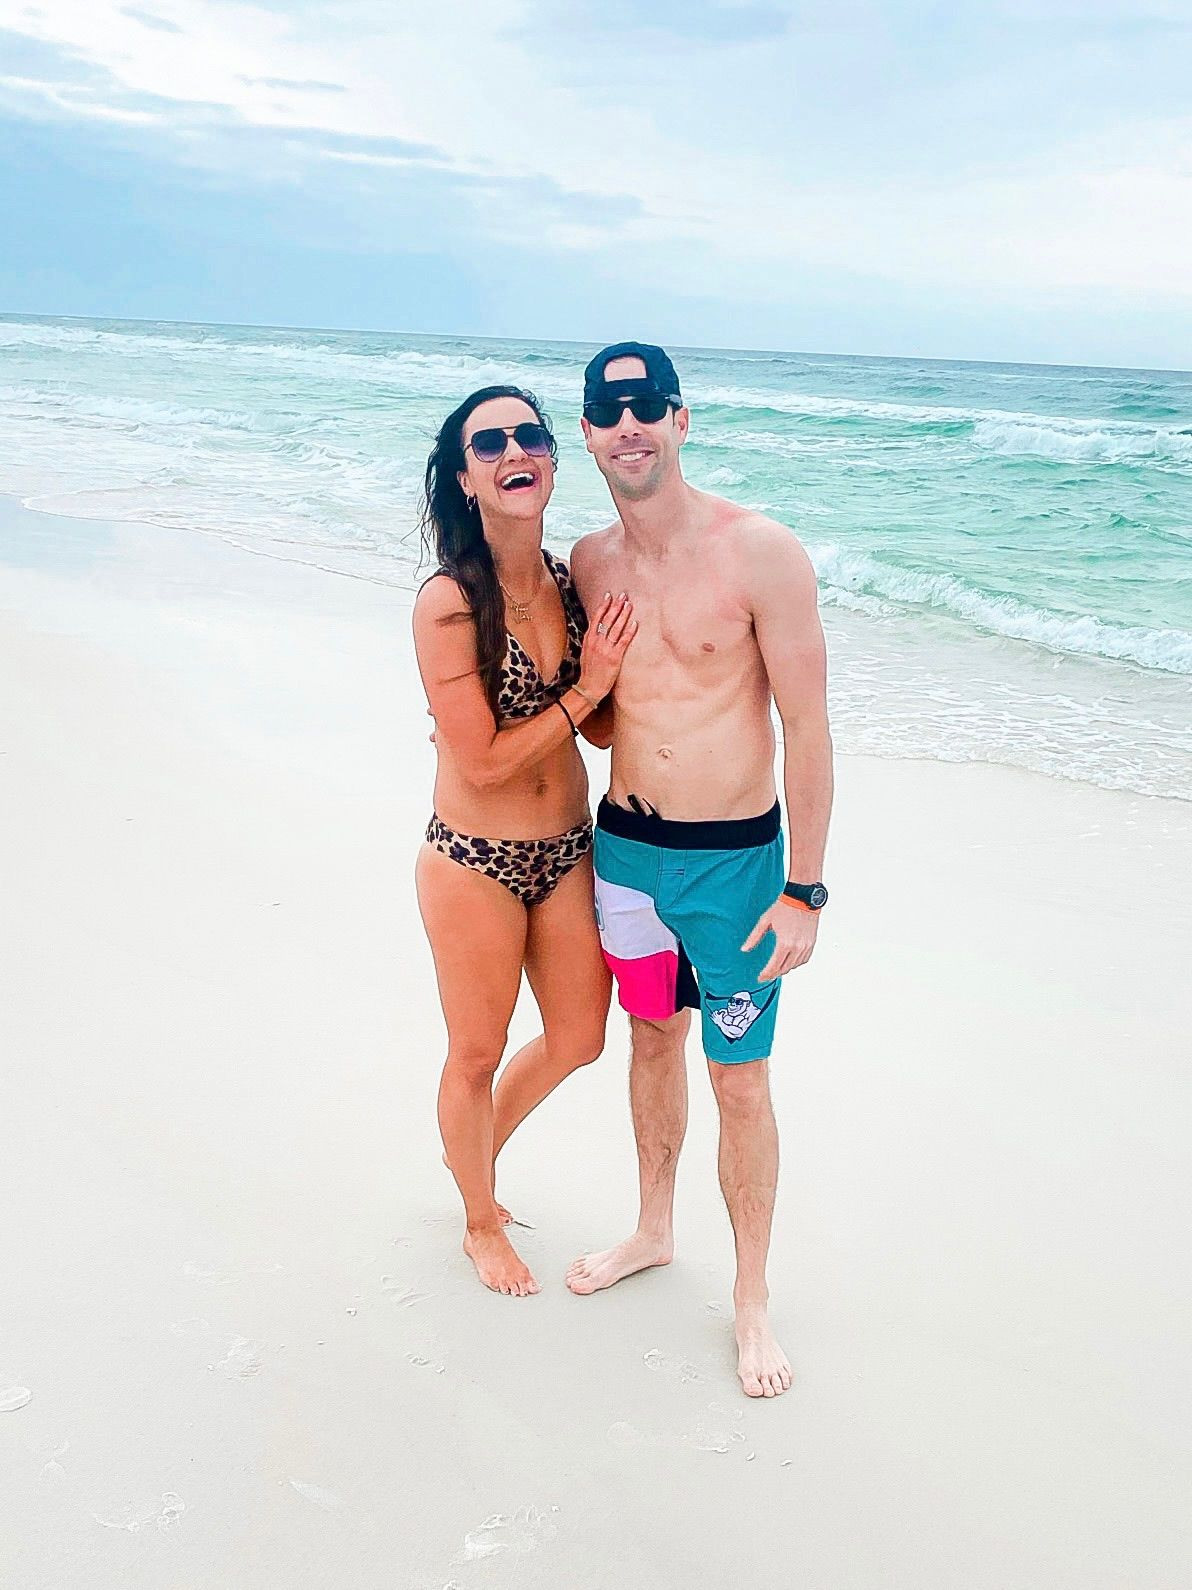 Husband and wife photo at the beach, couples swimwear